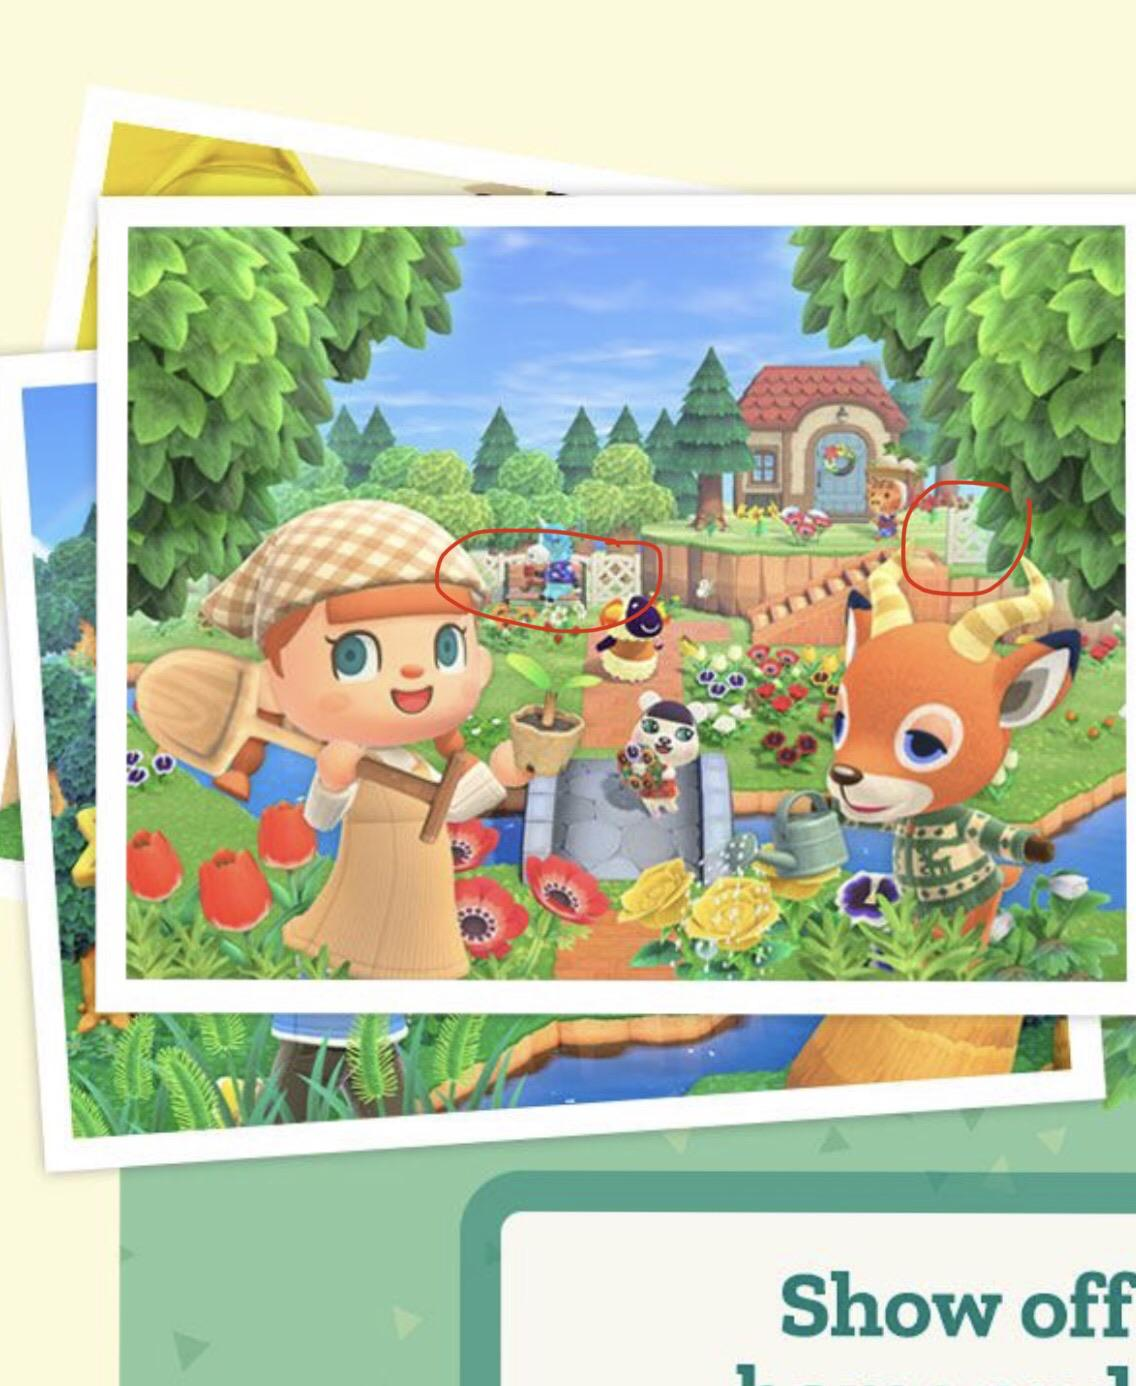 Nintendo Sent Me An Email Earlier Today With One Of The Original Advertisement Screenshots That We Ve Seen Before Looking Back On It Now You Can See Some White Lattice Fences In The